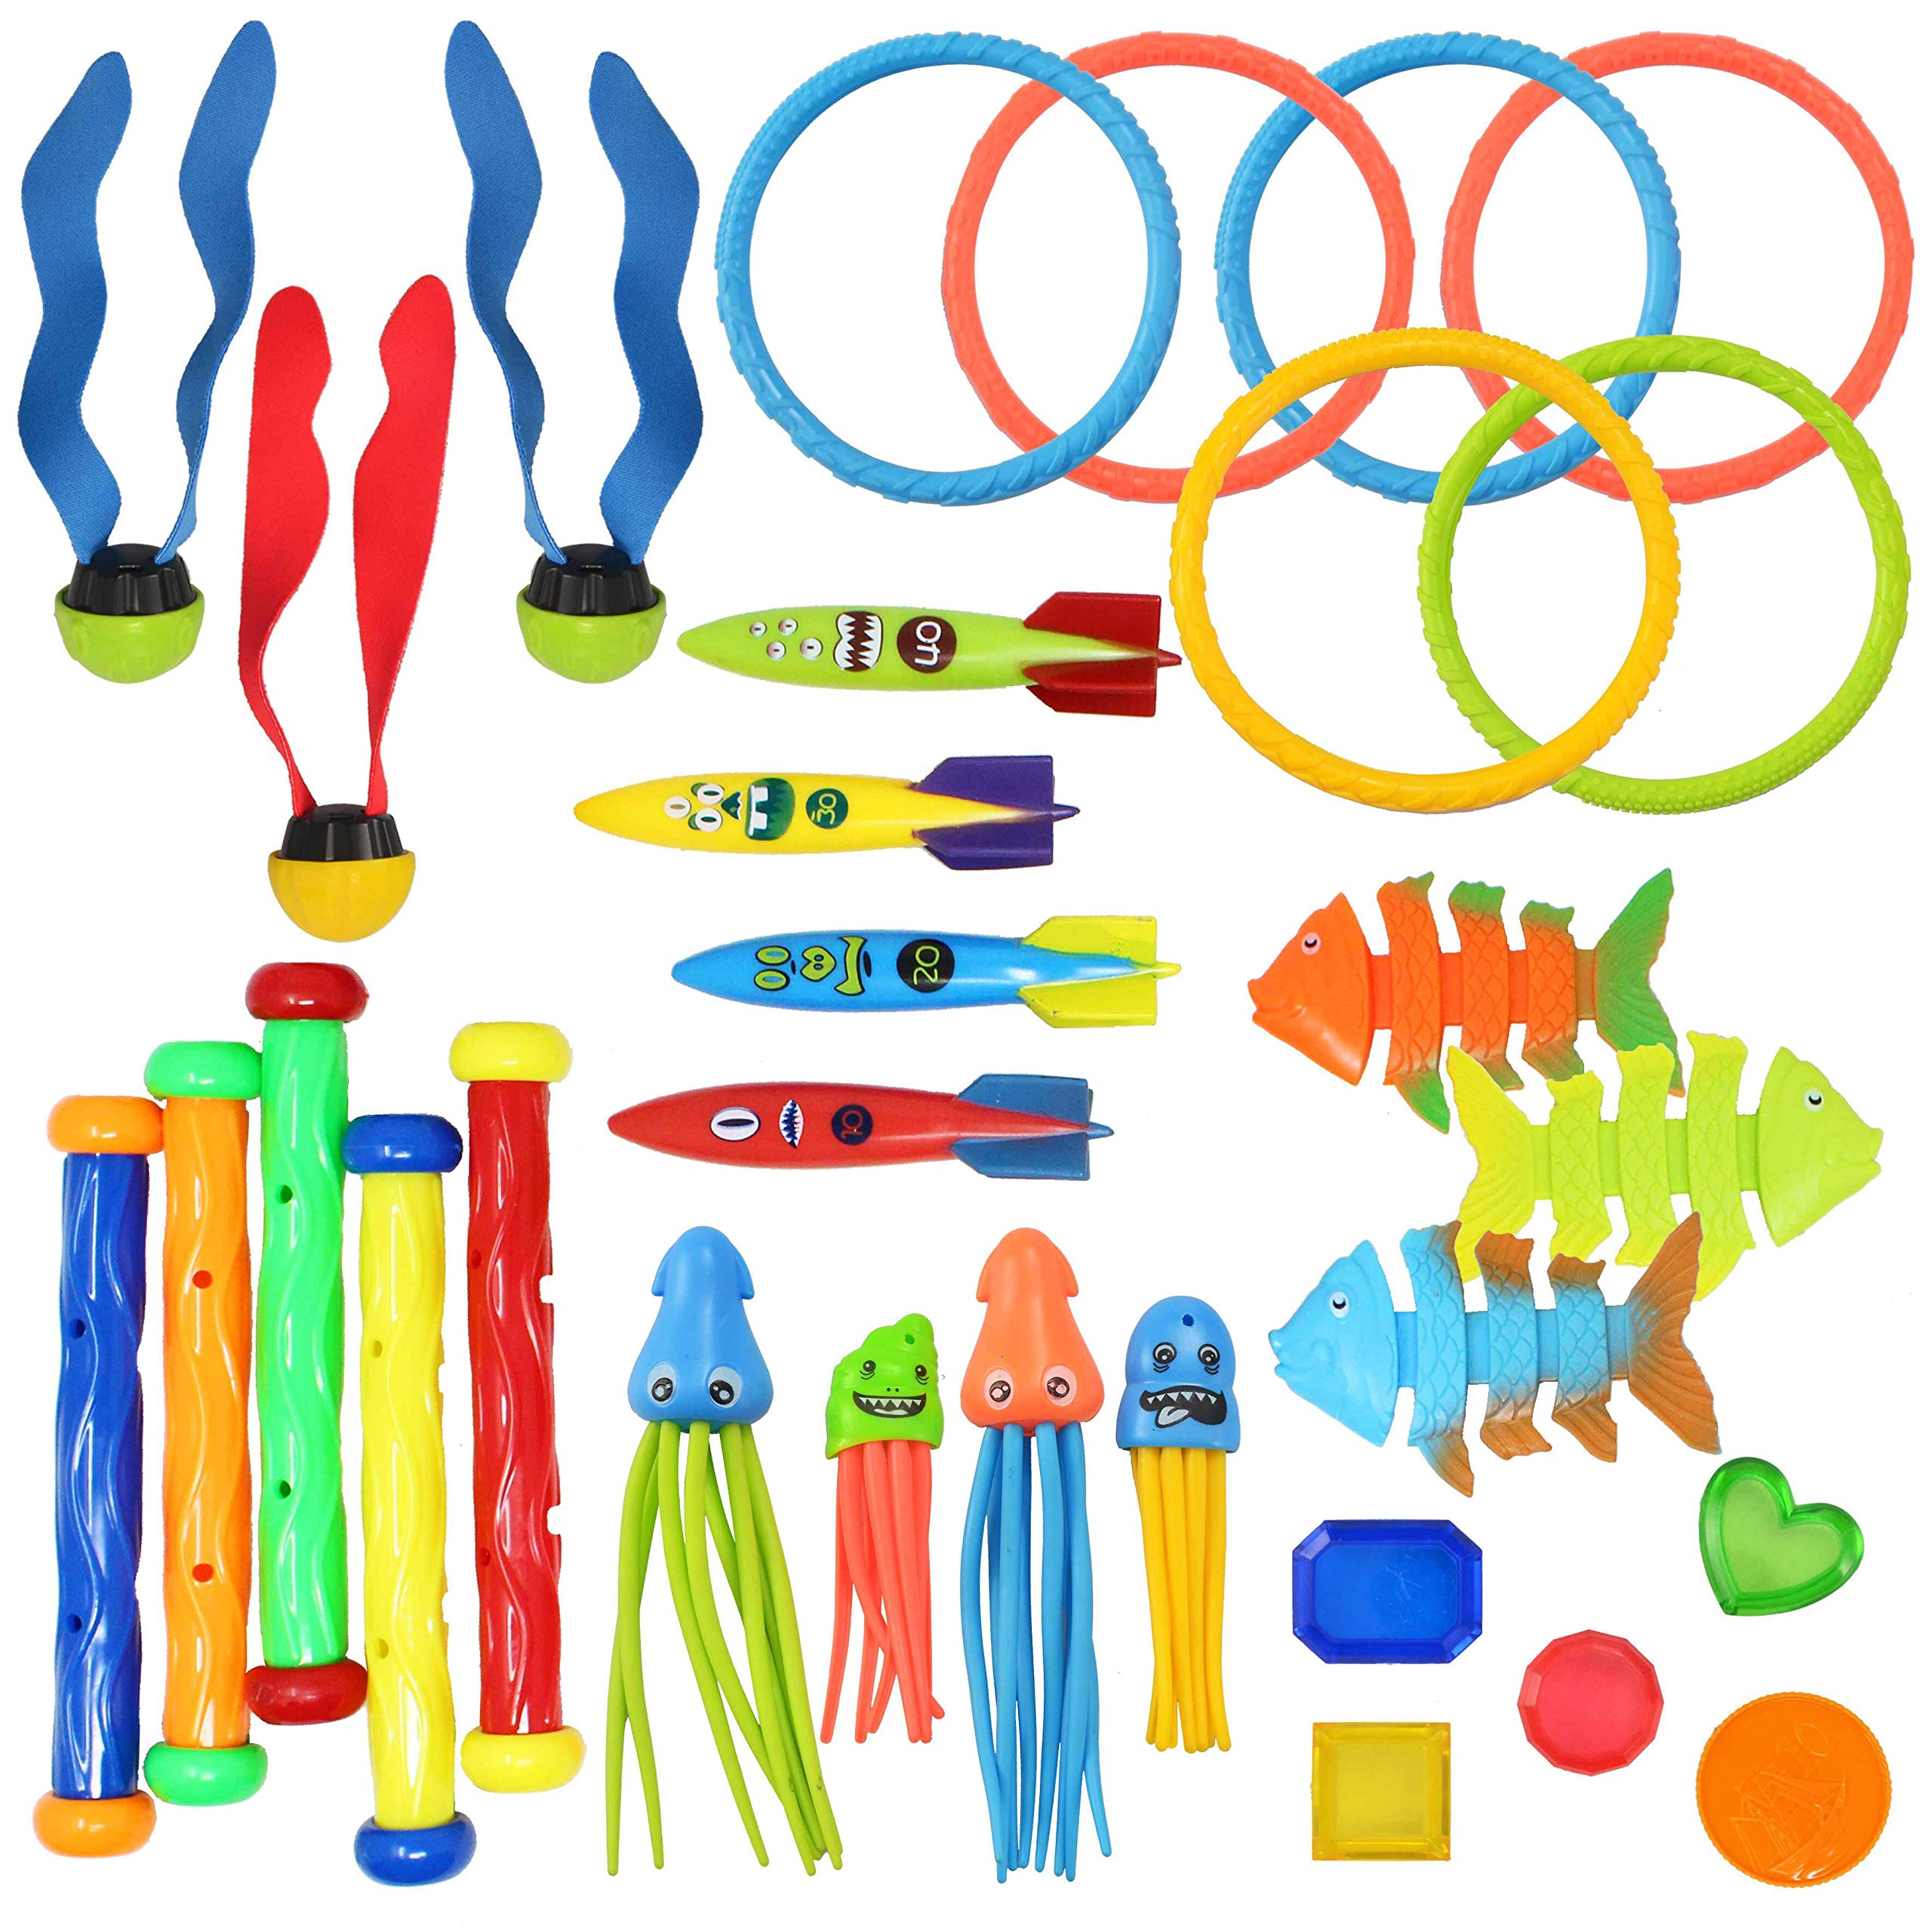 JOYIN 30 Pcs Diving Pool Toys Jumbo Set Includes (5) Diving Sticks, (6) Diving Rings, (5) Pirate Treasures, (4) Toypedo Bandits, (3) Diving Toy Balls, (3) Fish Toys, (4) Stringy Octopus